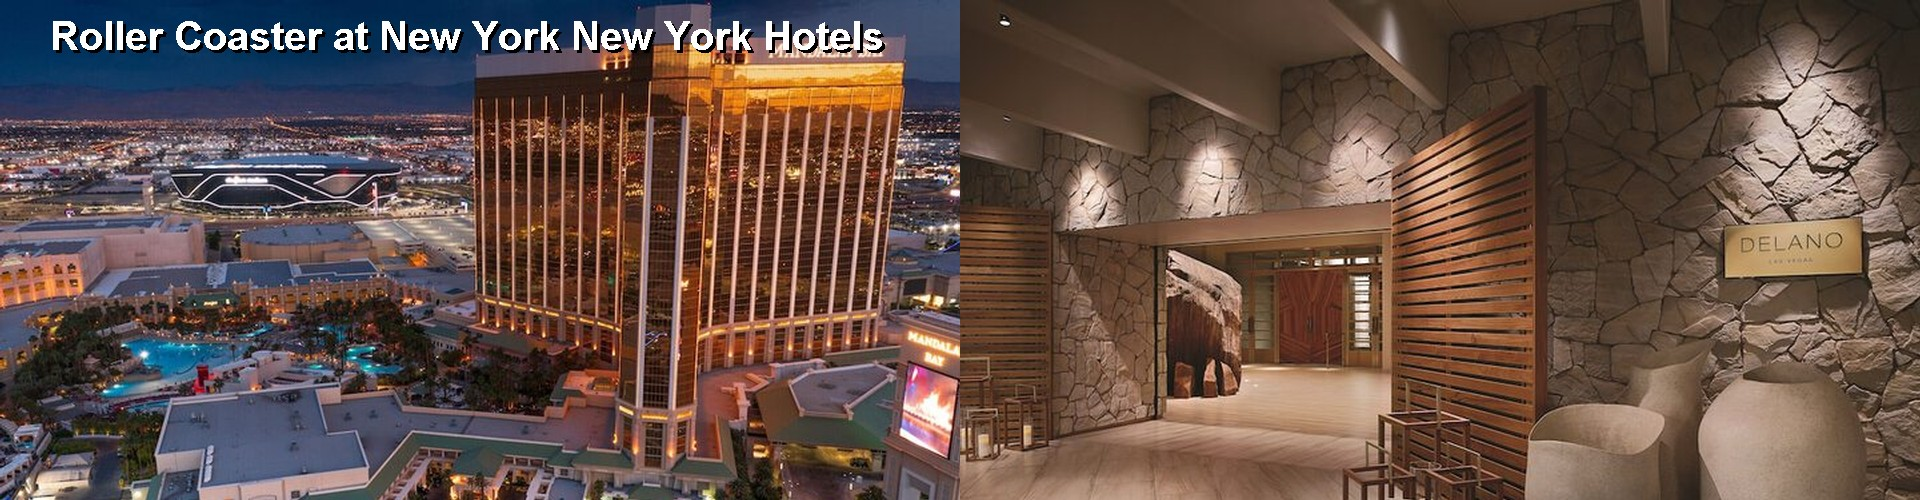 5 Best Hotels near Roller Coaster at New York New York